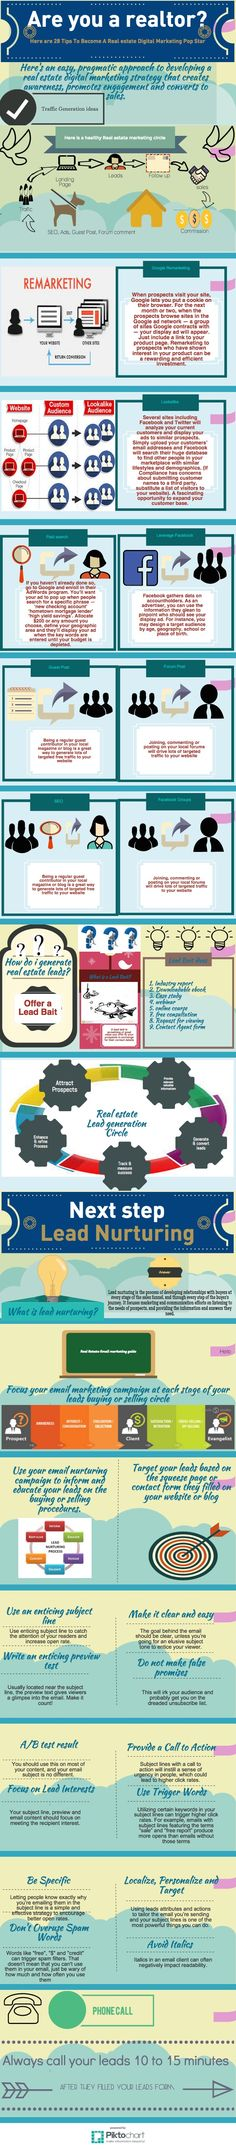 28 tips for becoming a realtor digital marketing pop star - #infographic